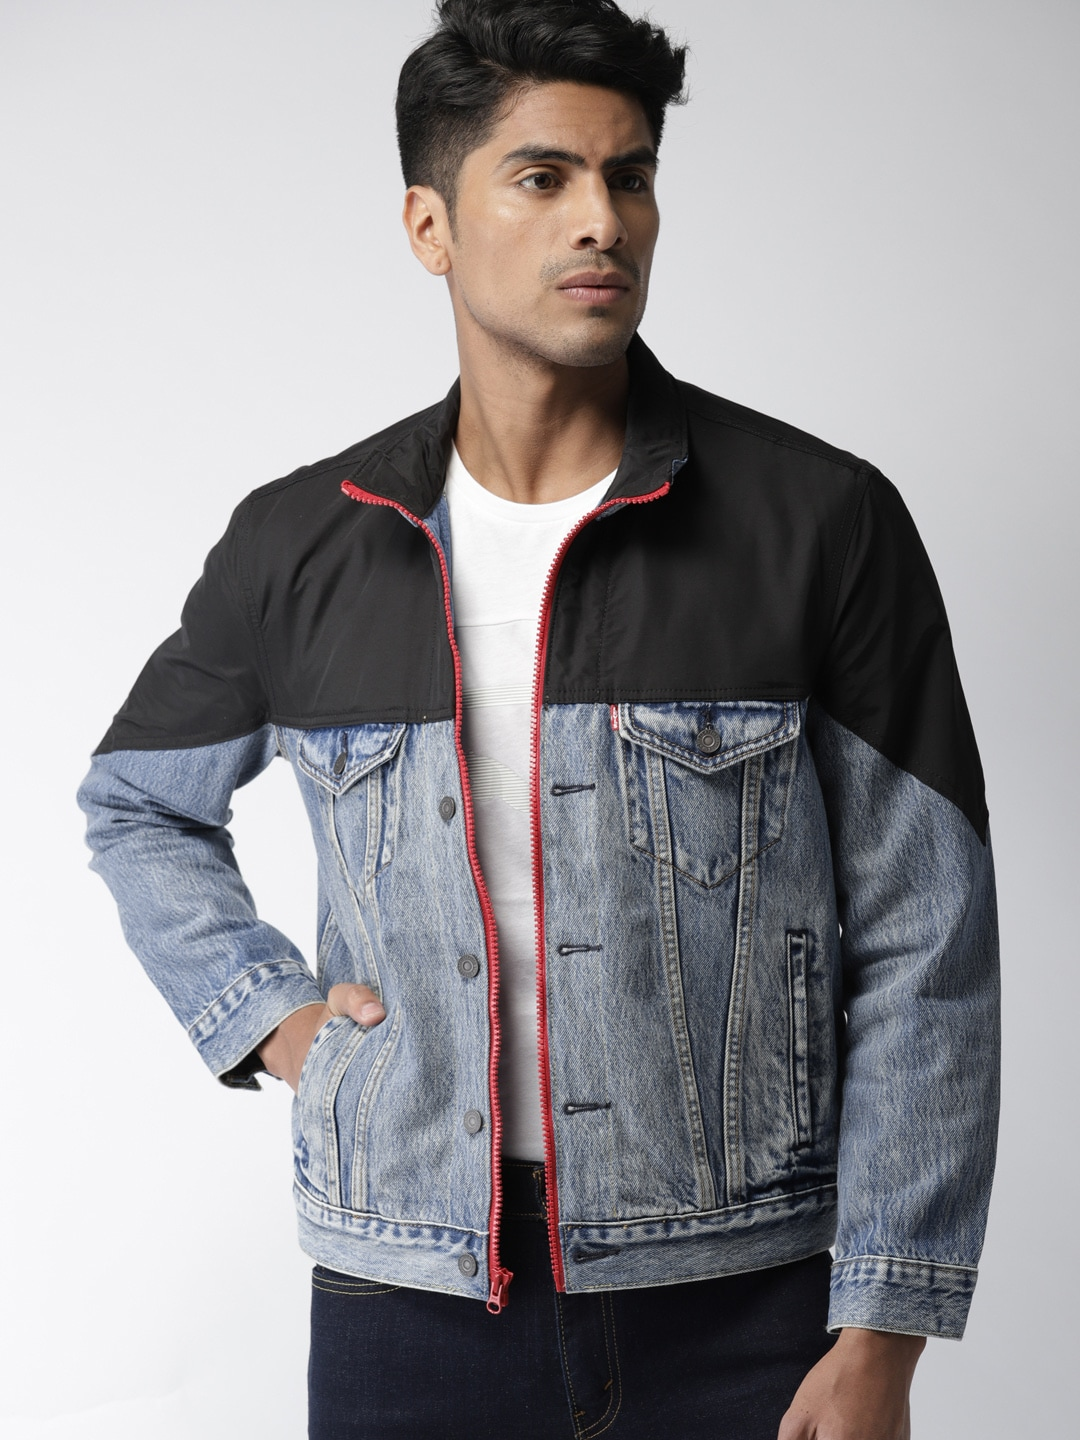 846717ecd45 Blue Denim Jackets - Buy Blue Denim Jackets online in India